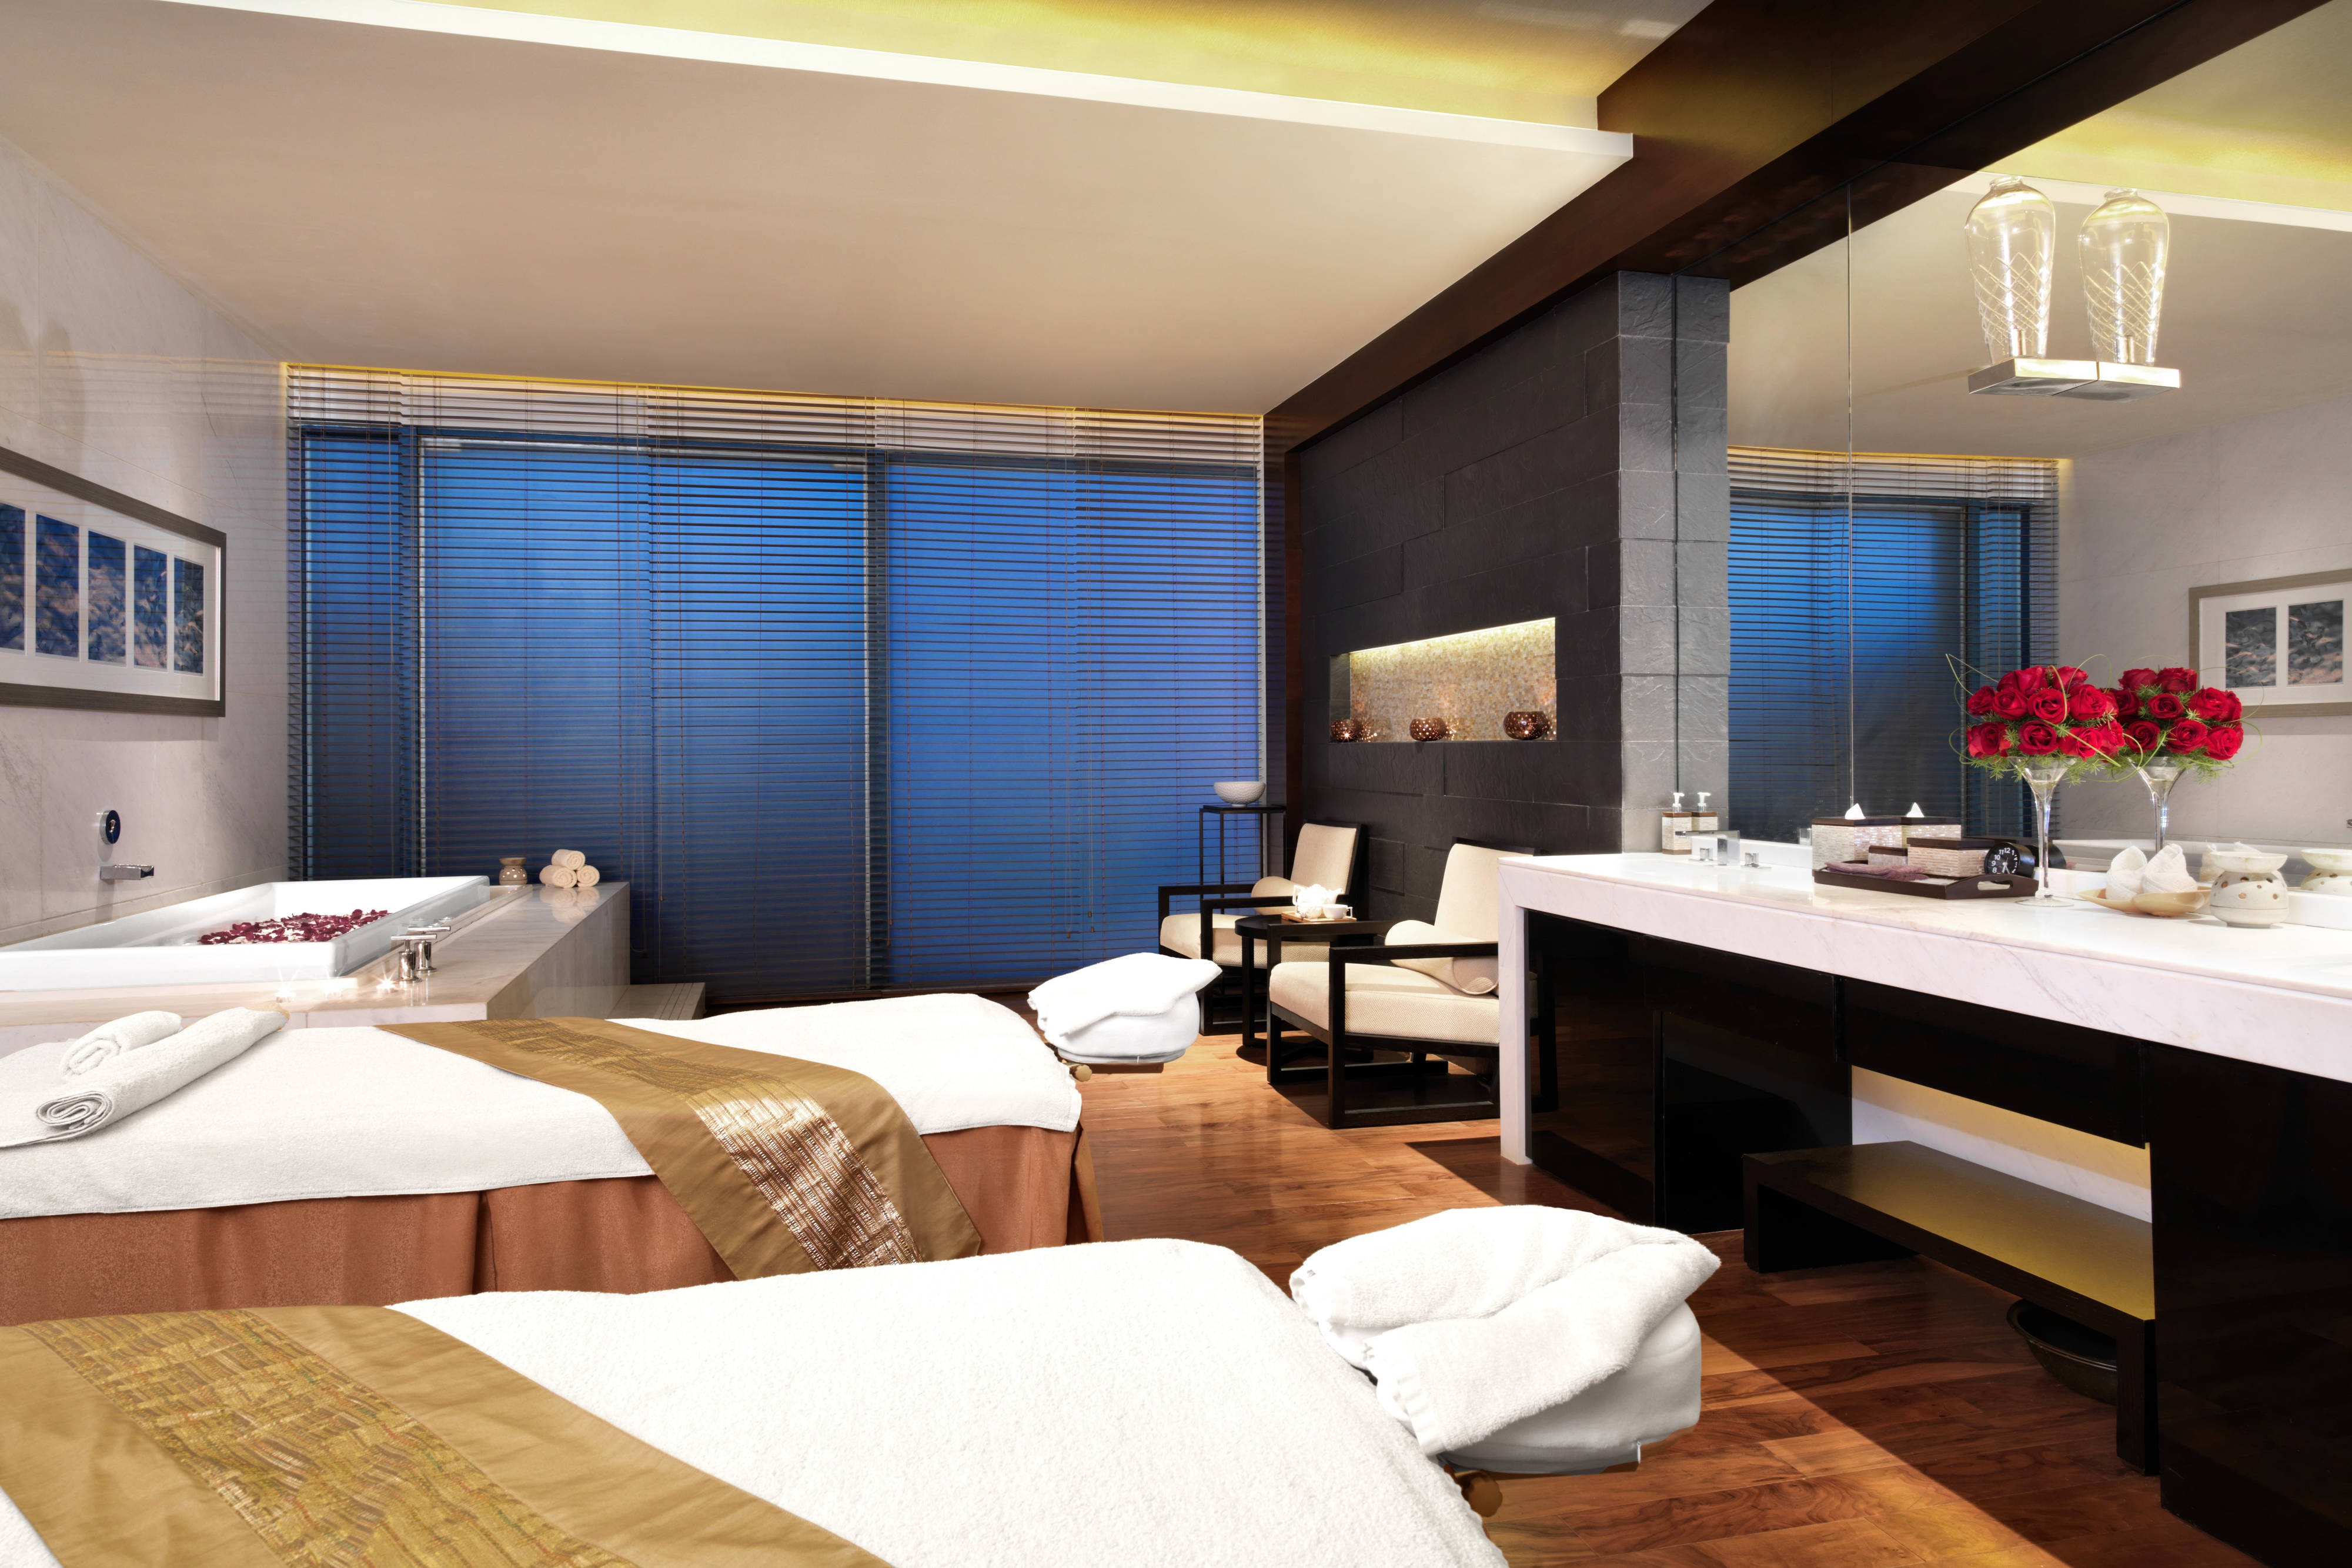 The Revive Spa - Treatment Room